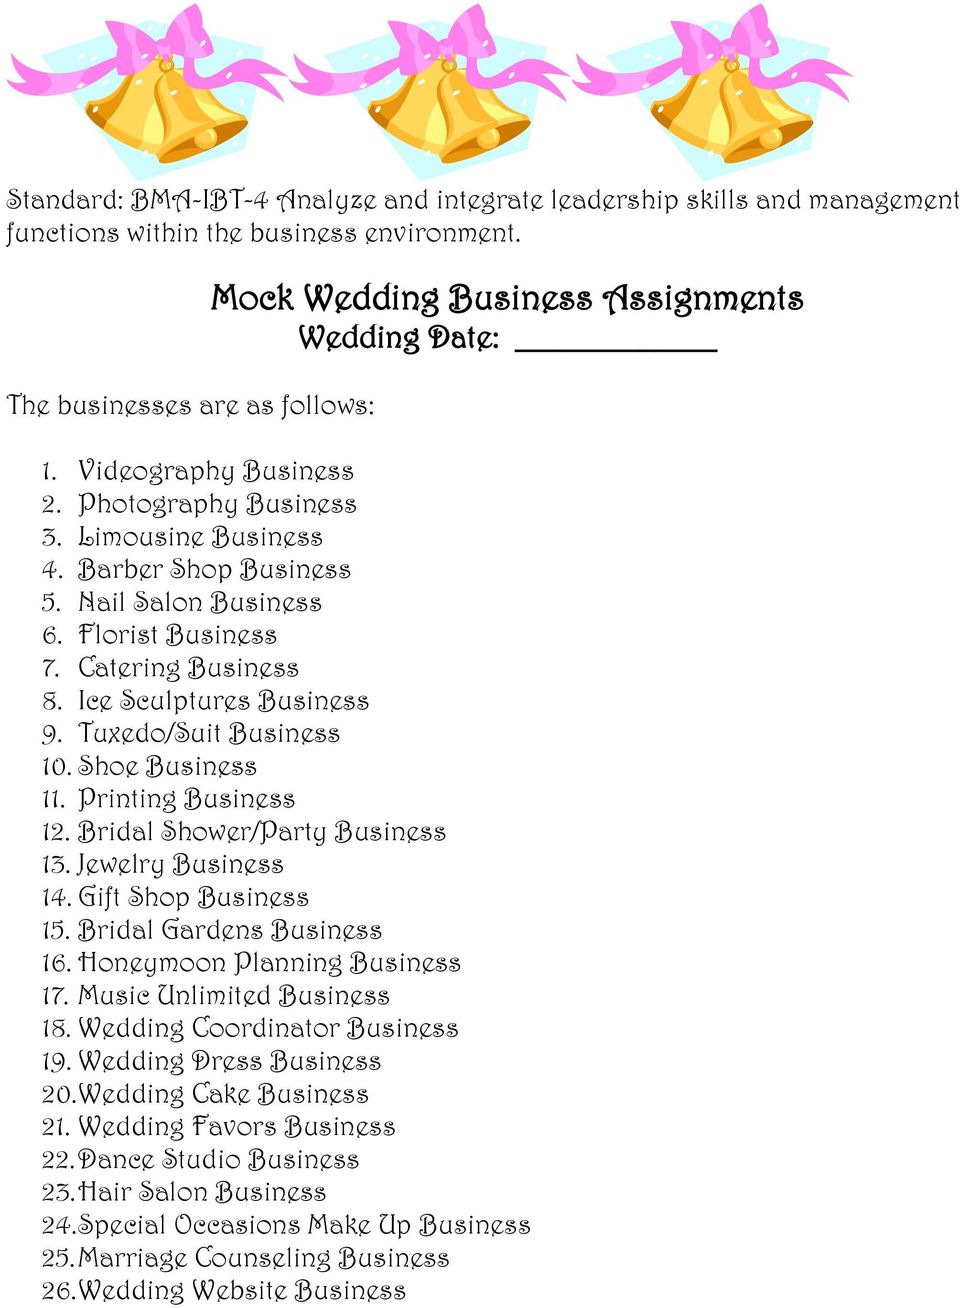 Tuxedo/Suit Business 10. Shoe Business 11. Printing Business 12. Bridal Shower/Party Business 13. Jewelry Business 14. Gift Shop Business 15. Bridal Gardens Business 16.